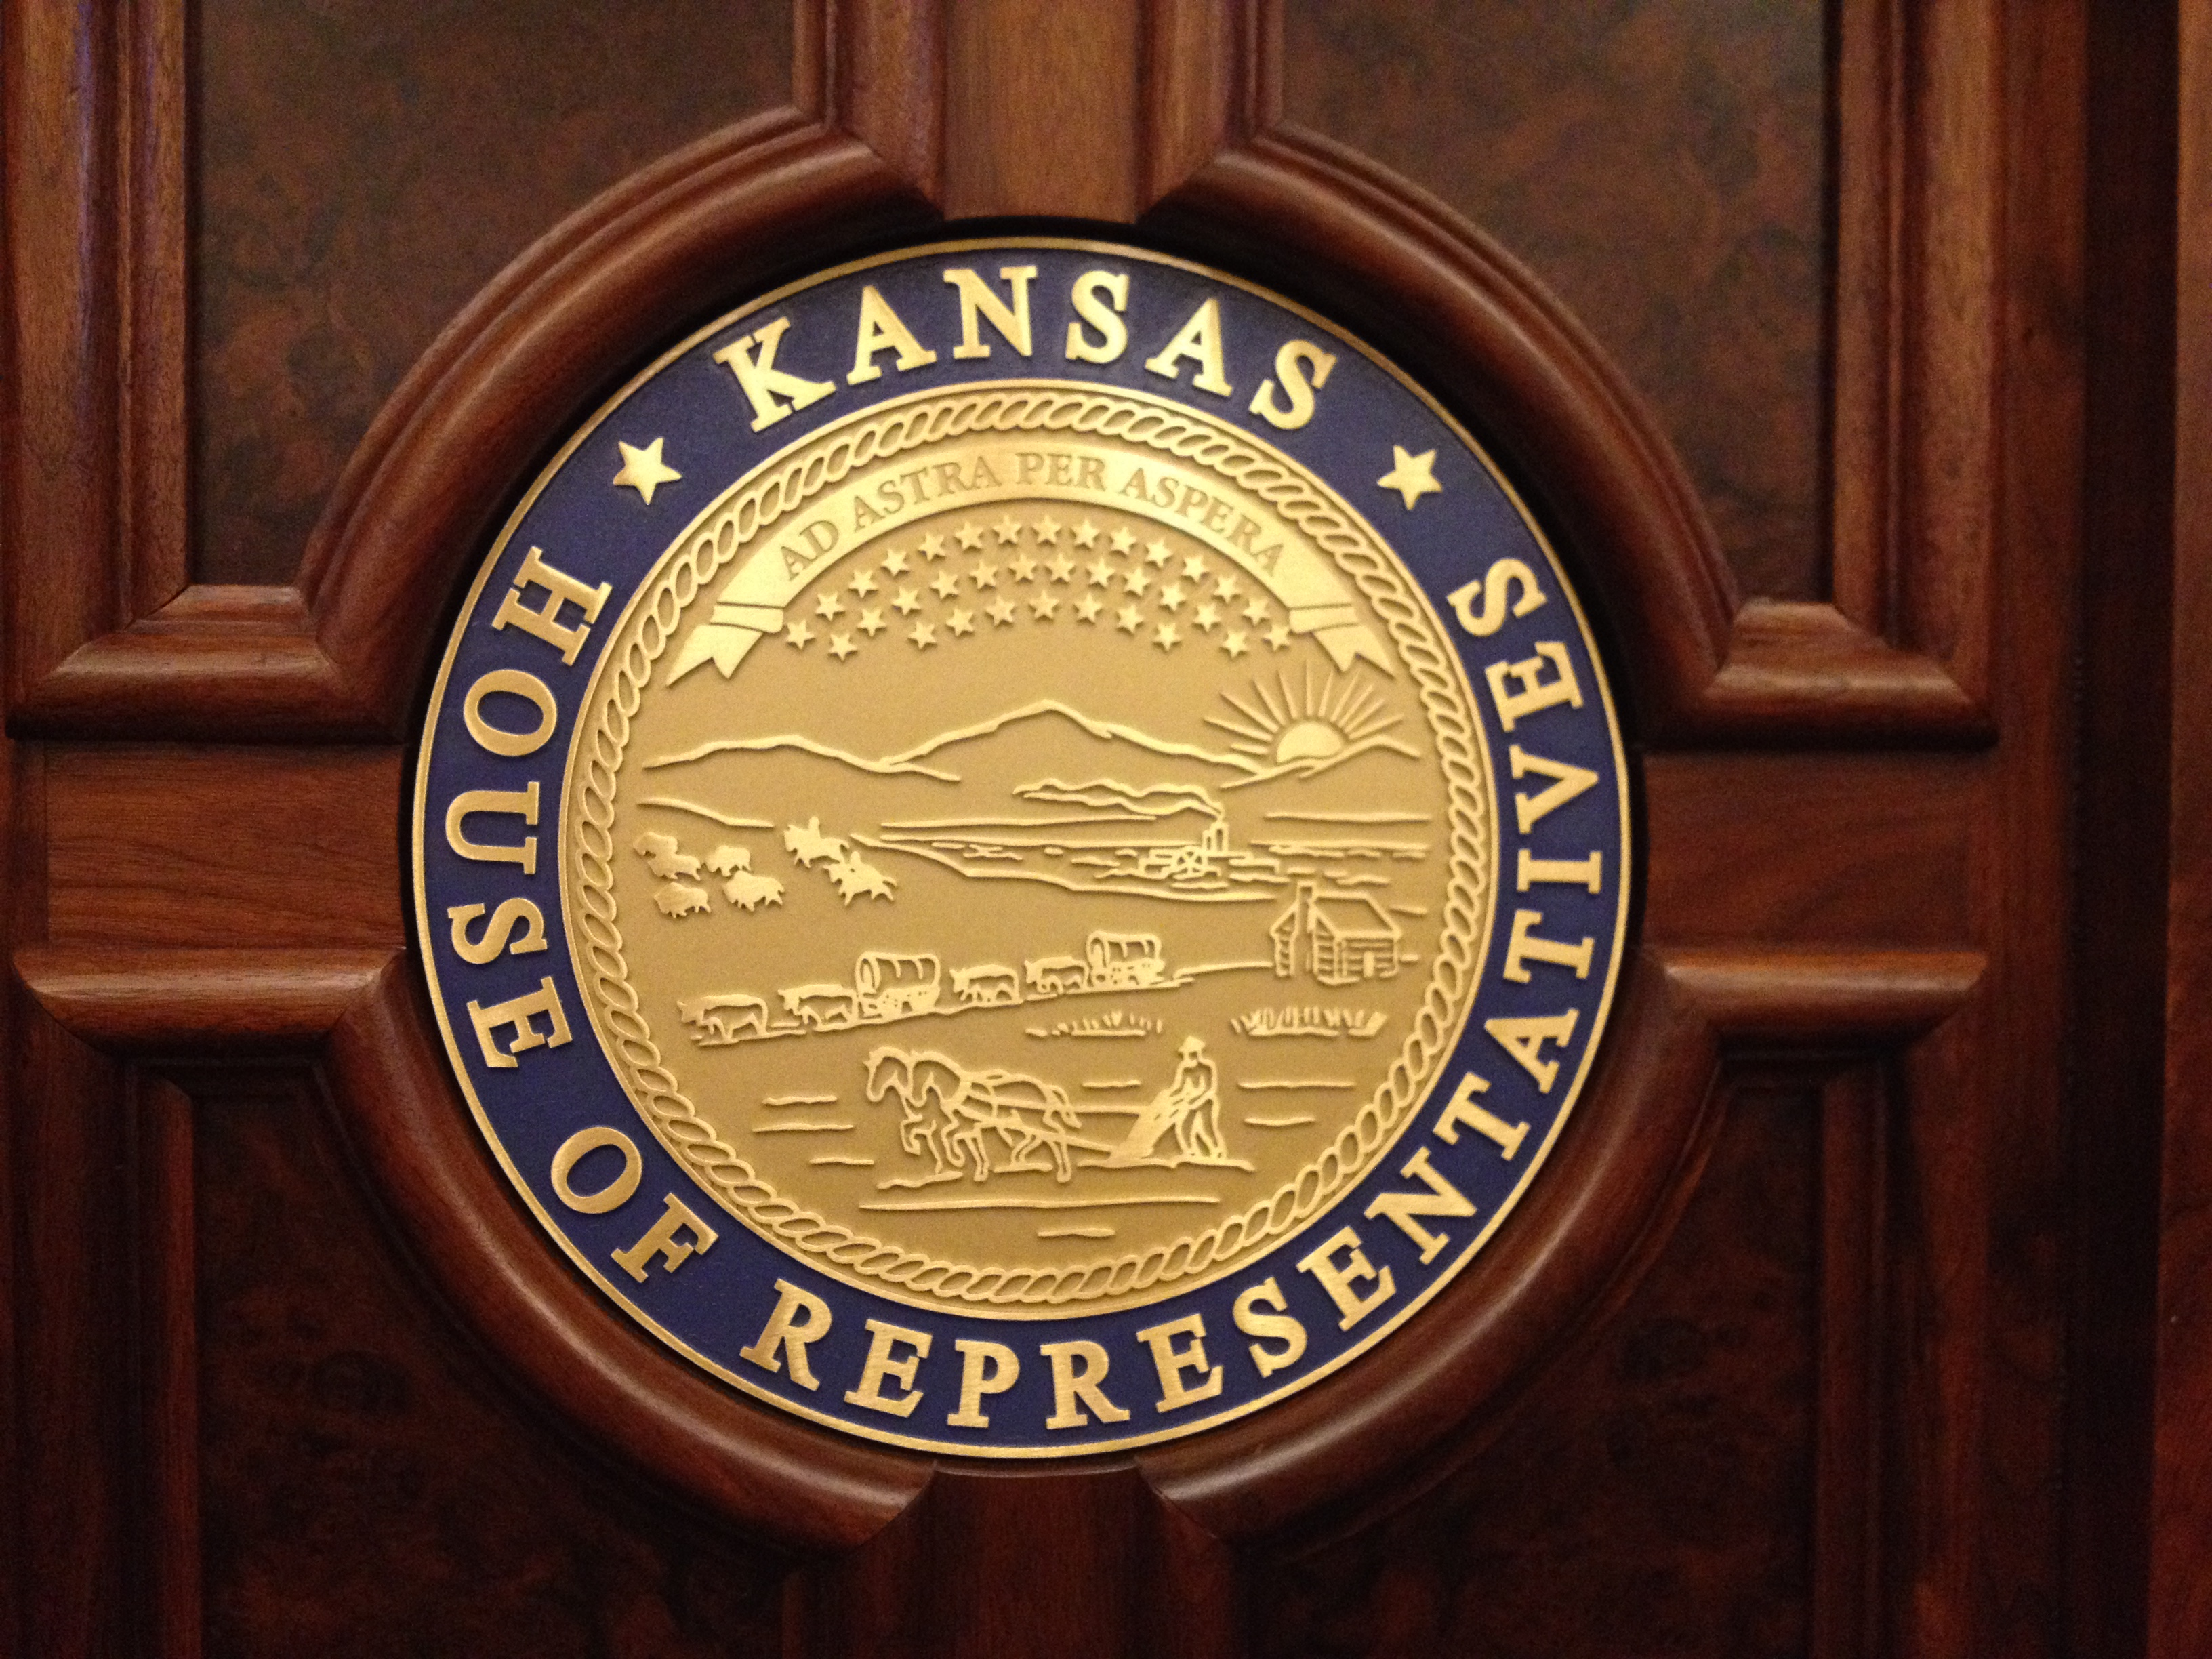 Seal of the Great State of Kansas inside the Kansas House chamber (Photo by J. Schafer)